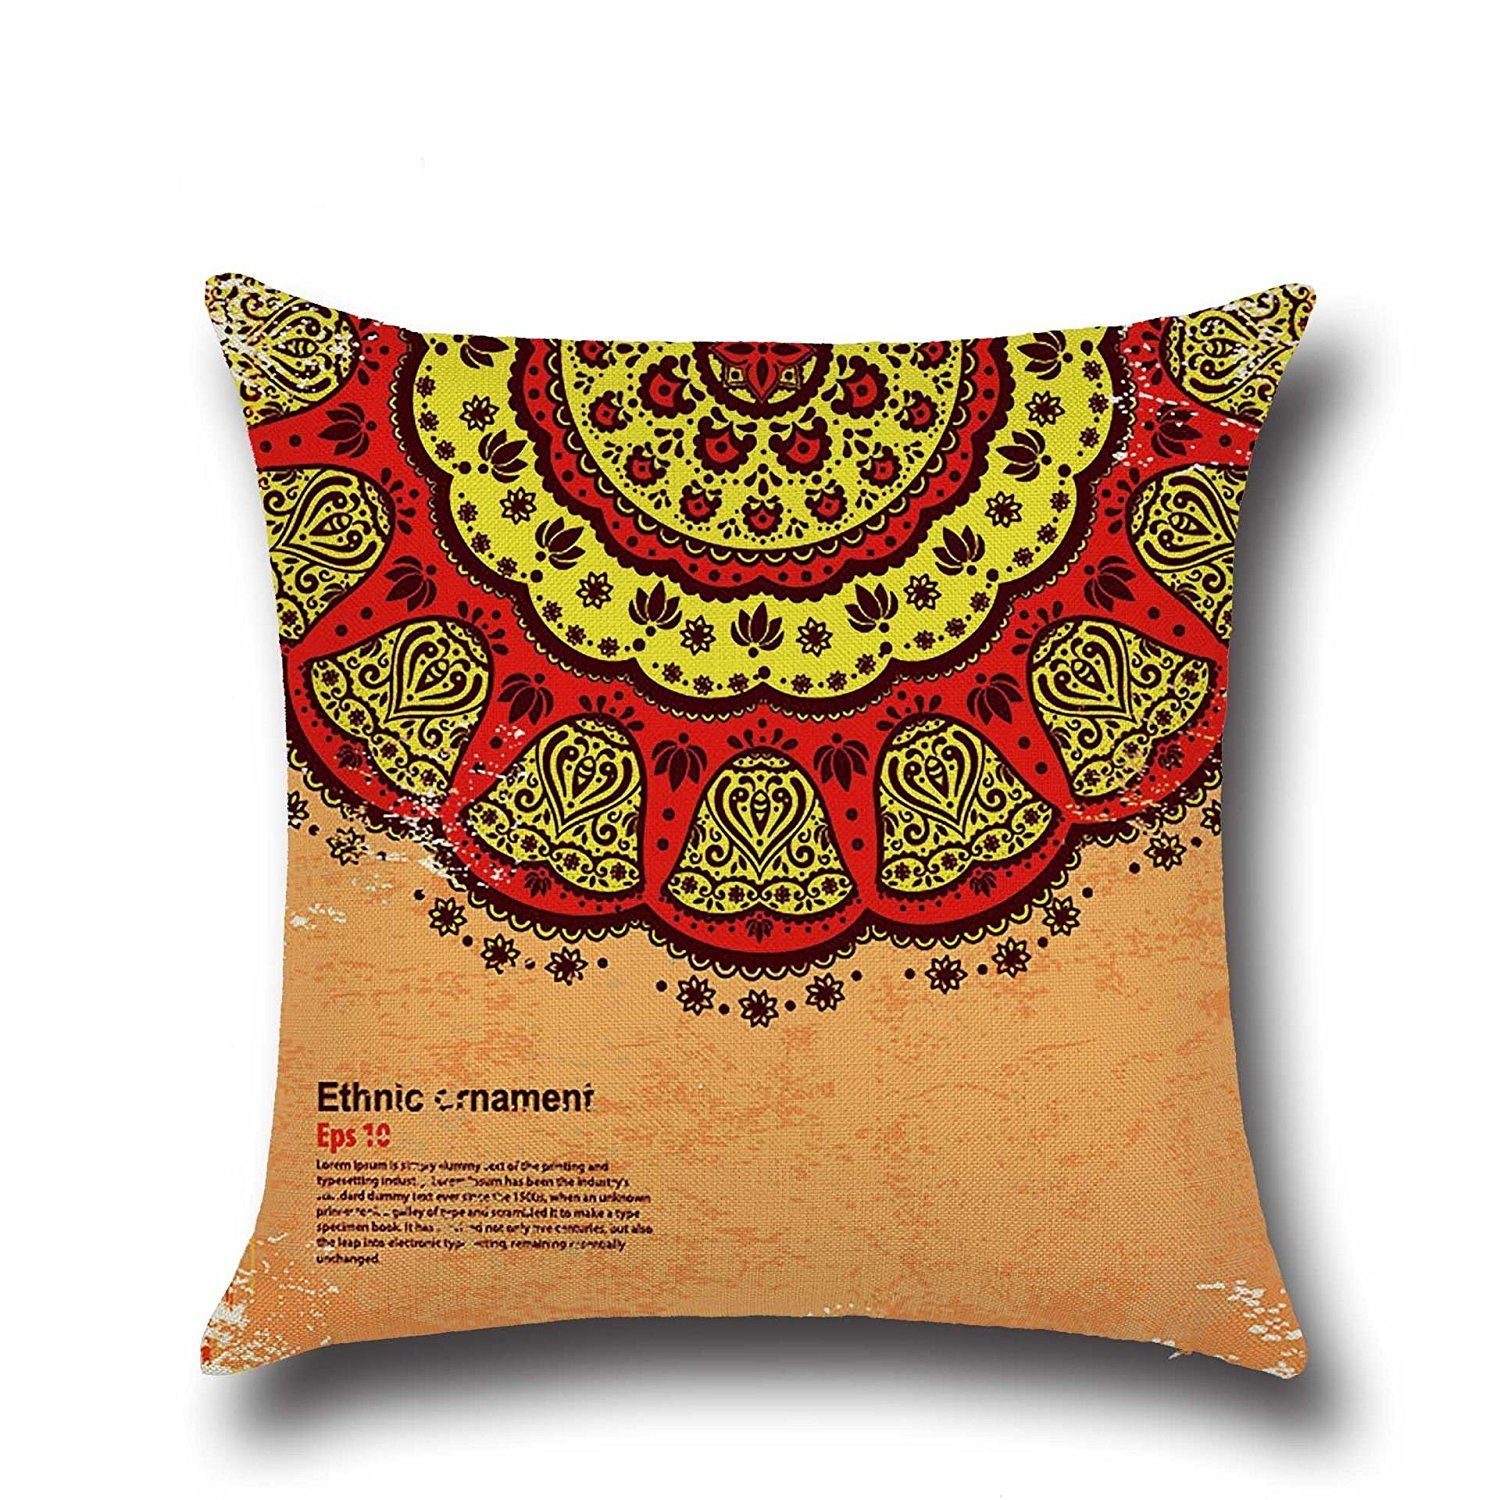 HOMEE Stylish and Fantastic Sunset Shanshui Flower-Pattern Cambodia and Thailand India Southeast Asia Style ,4545Cm,01 Pillow,04,4545cm